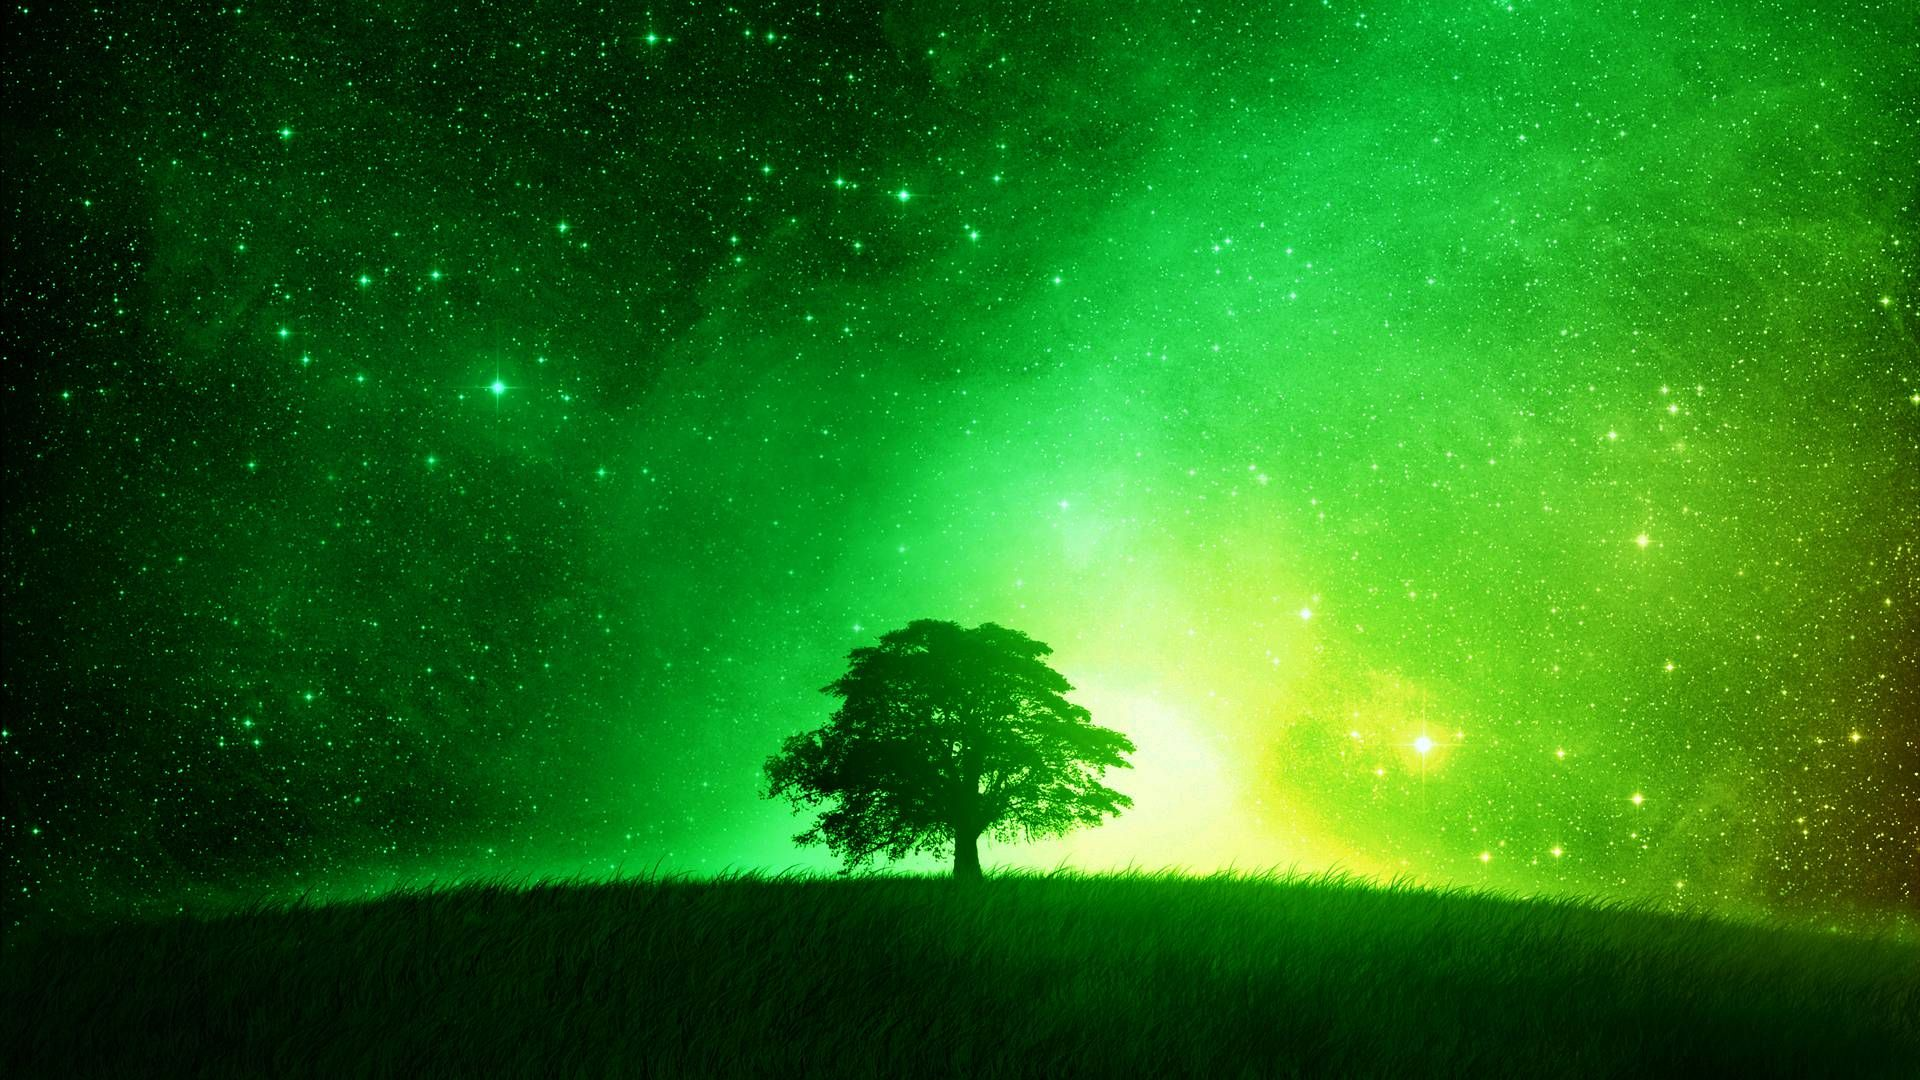 Color Therapy Healing Properties Of Green Hd Galaxy Wallpaper Galaxy Wallpaper Background Images